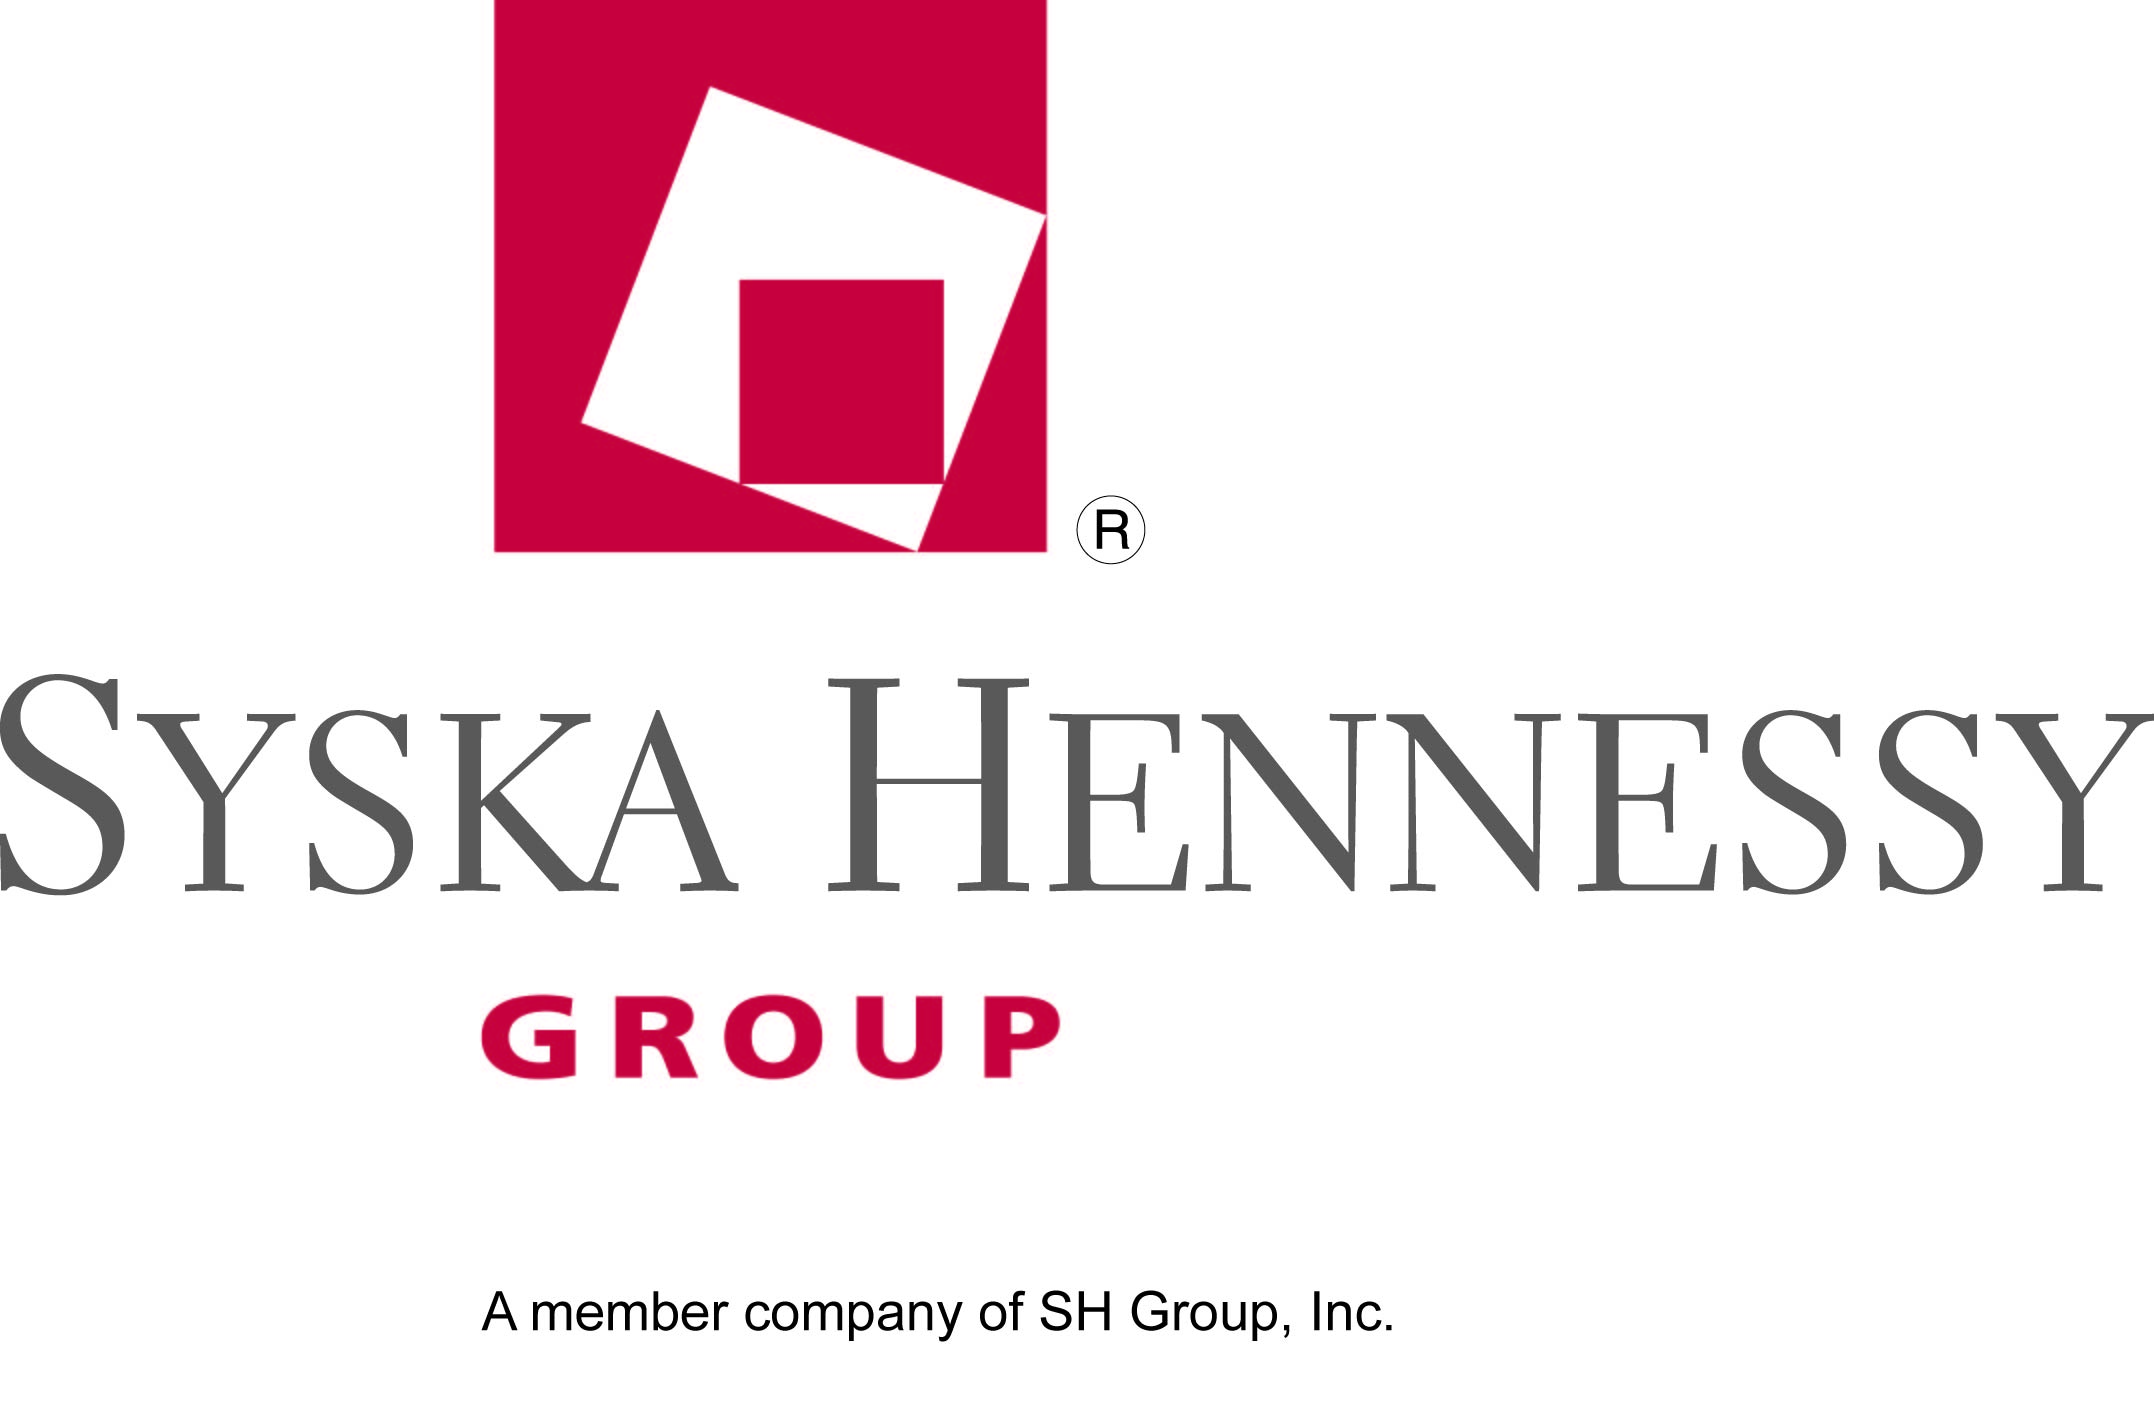 Celebrate Architecture 2020 - Syska Hennessy Group logo